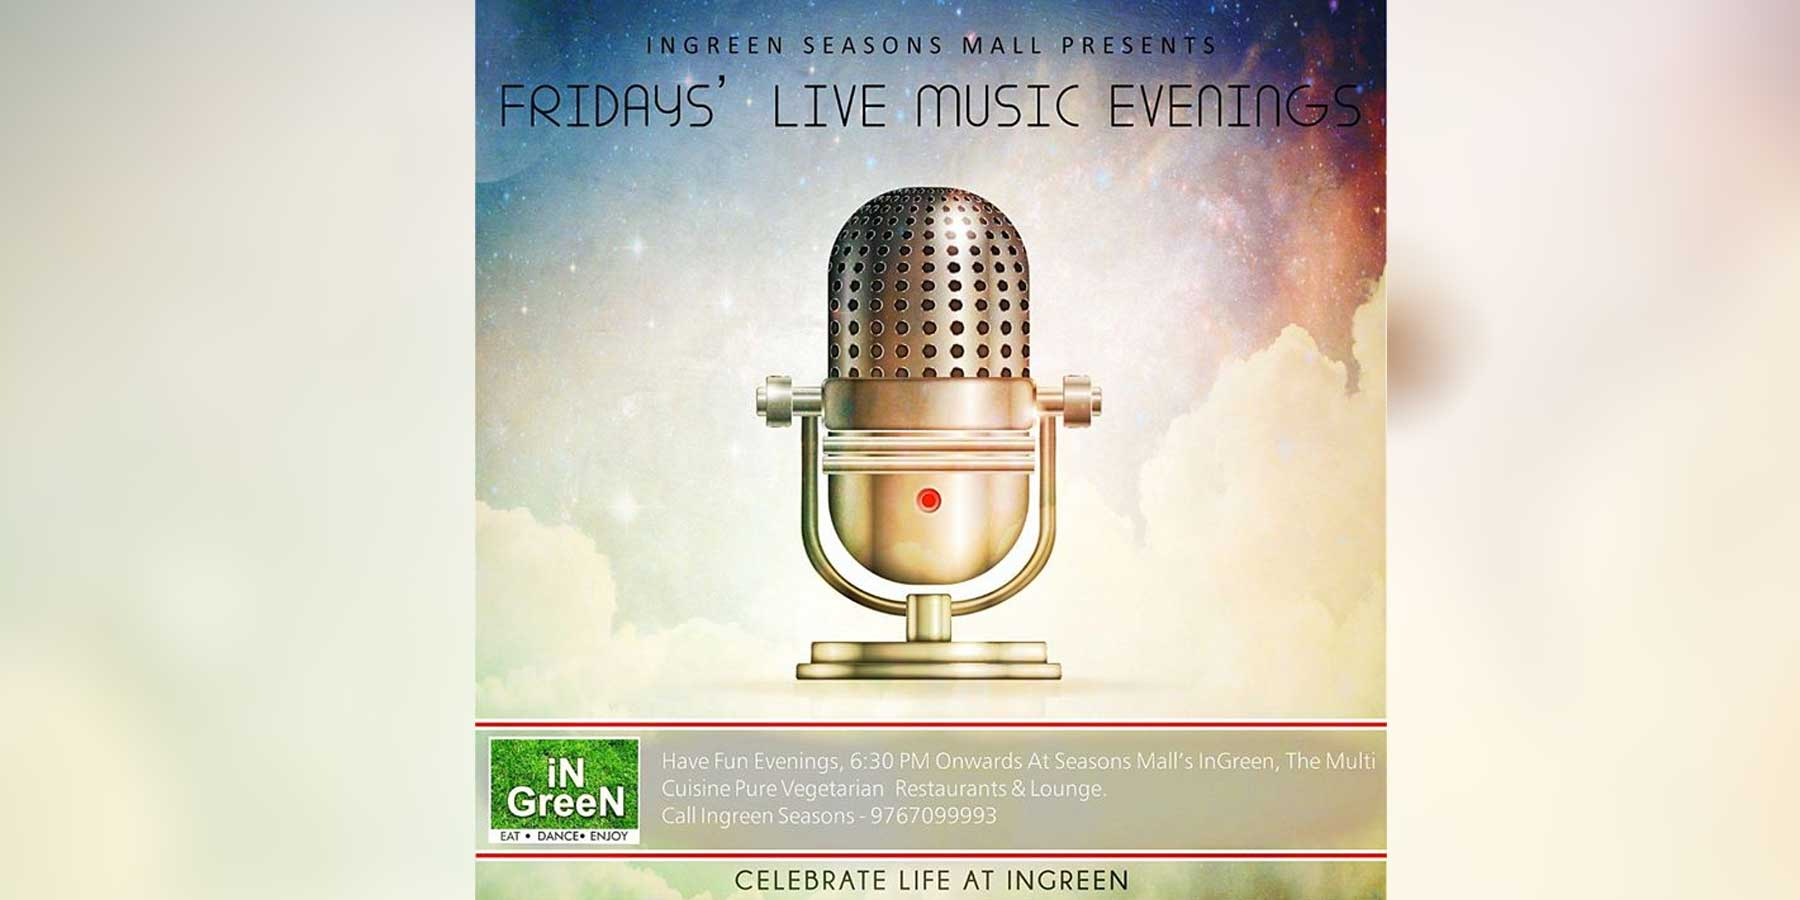 Fridays LIVE MUSIC Evenings with iNGreen at Seasons Mall's